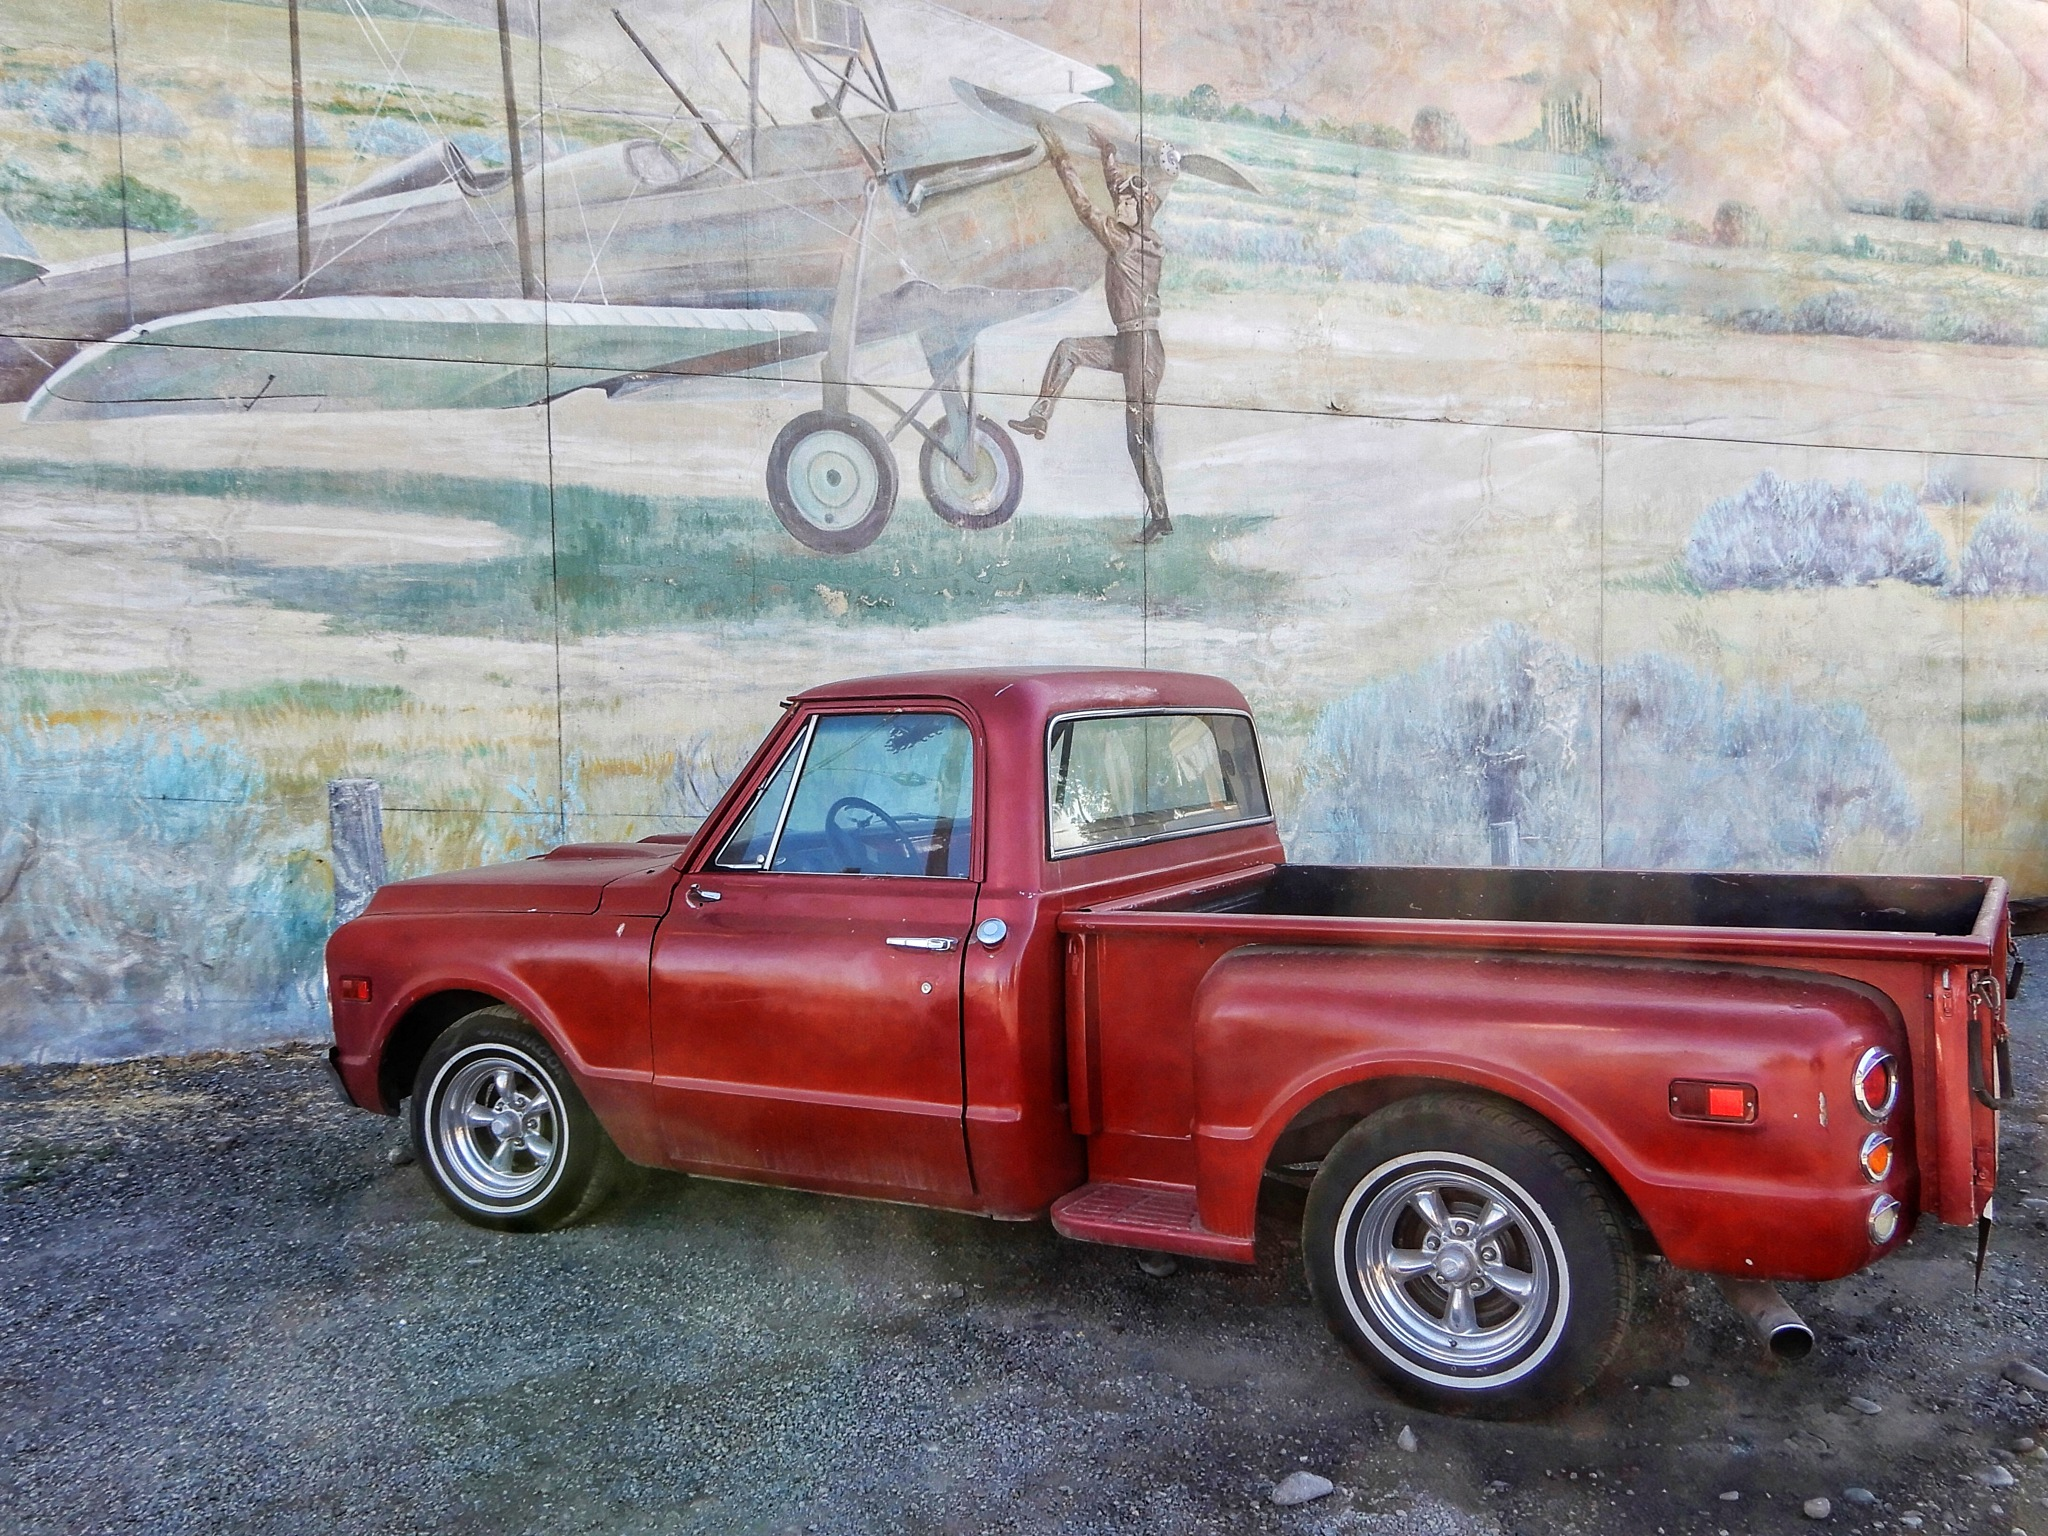 The red pickup truck  by Jackie06